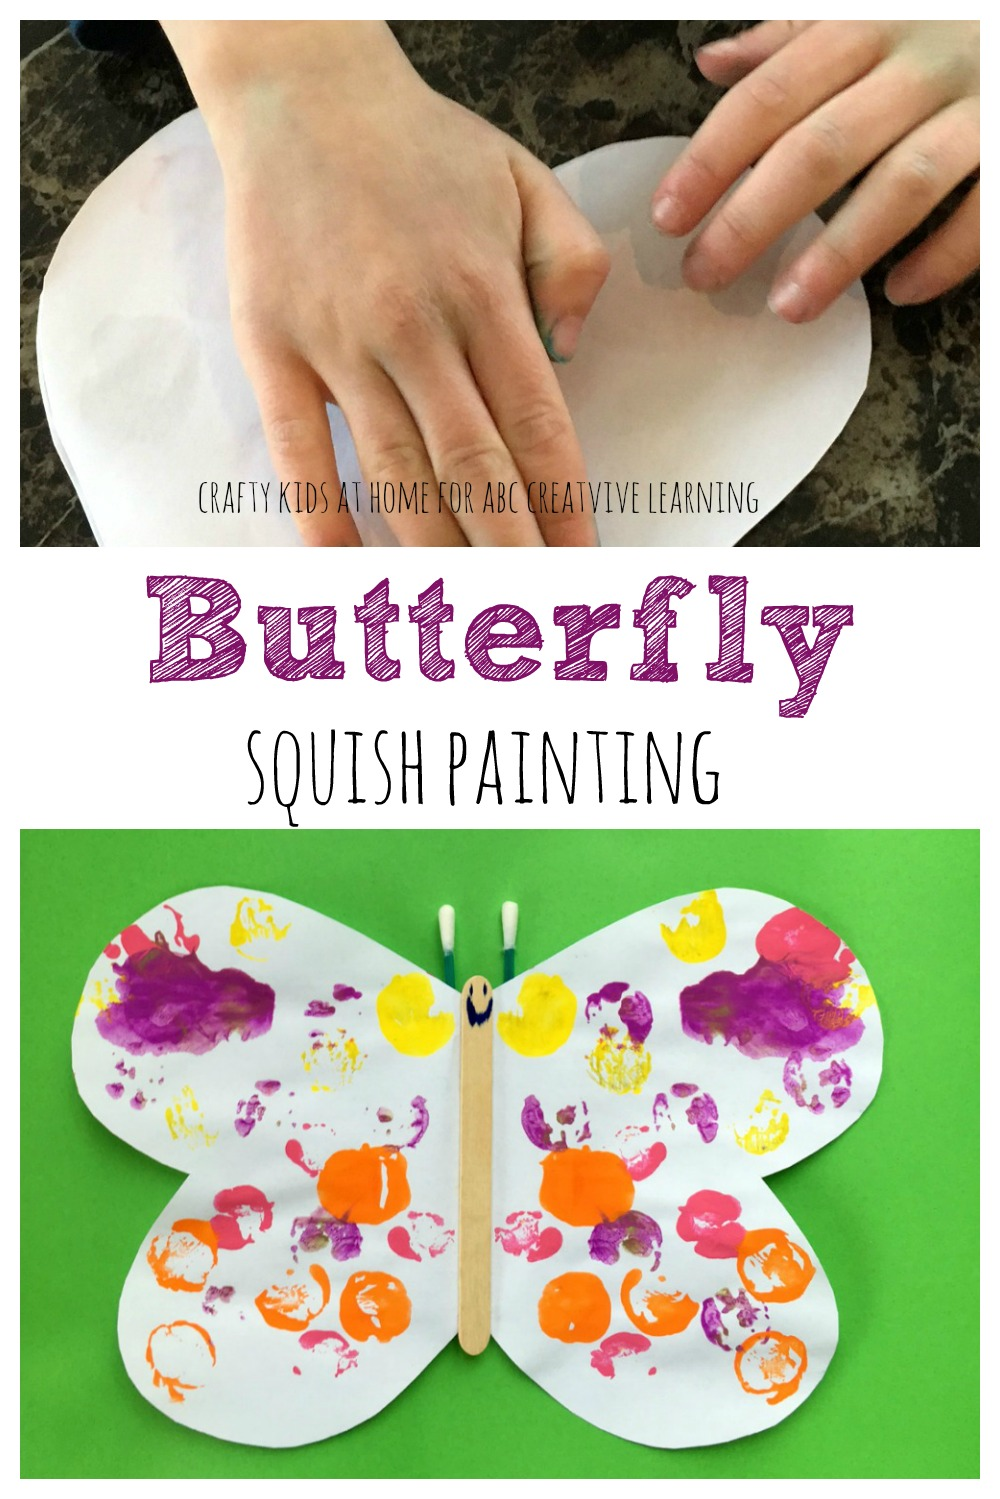 Butterfly squish painting 1000x1500